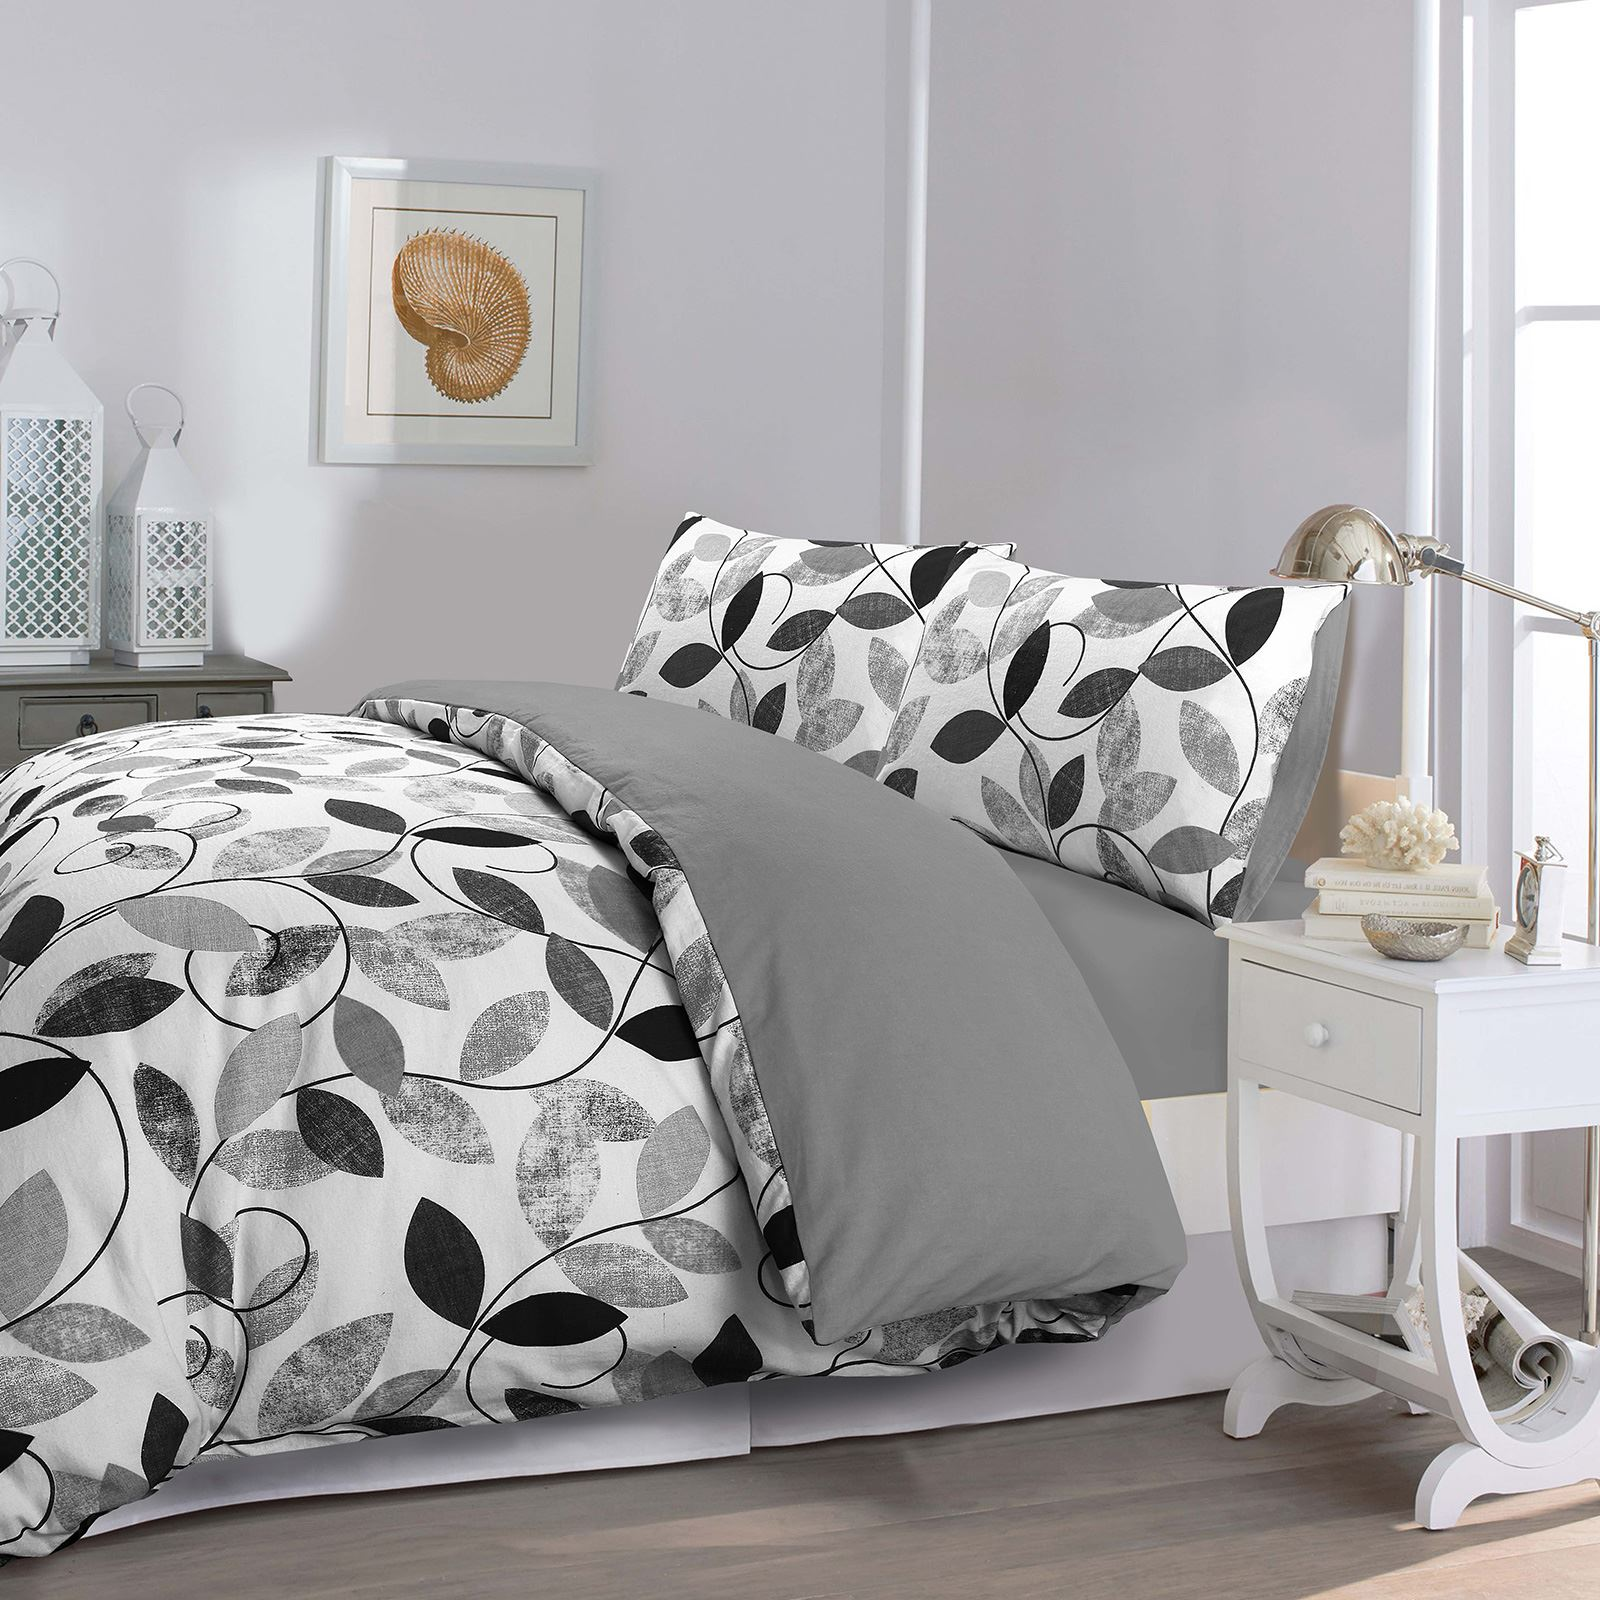 Flannel-100-Brushed-Cotton-Duvet-Cover-Bedding-Set-Single-Double-Super-King thumbnail 17